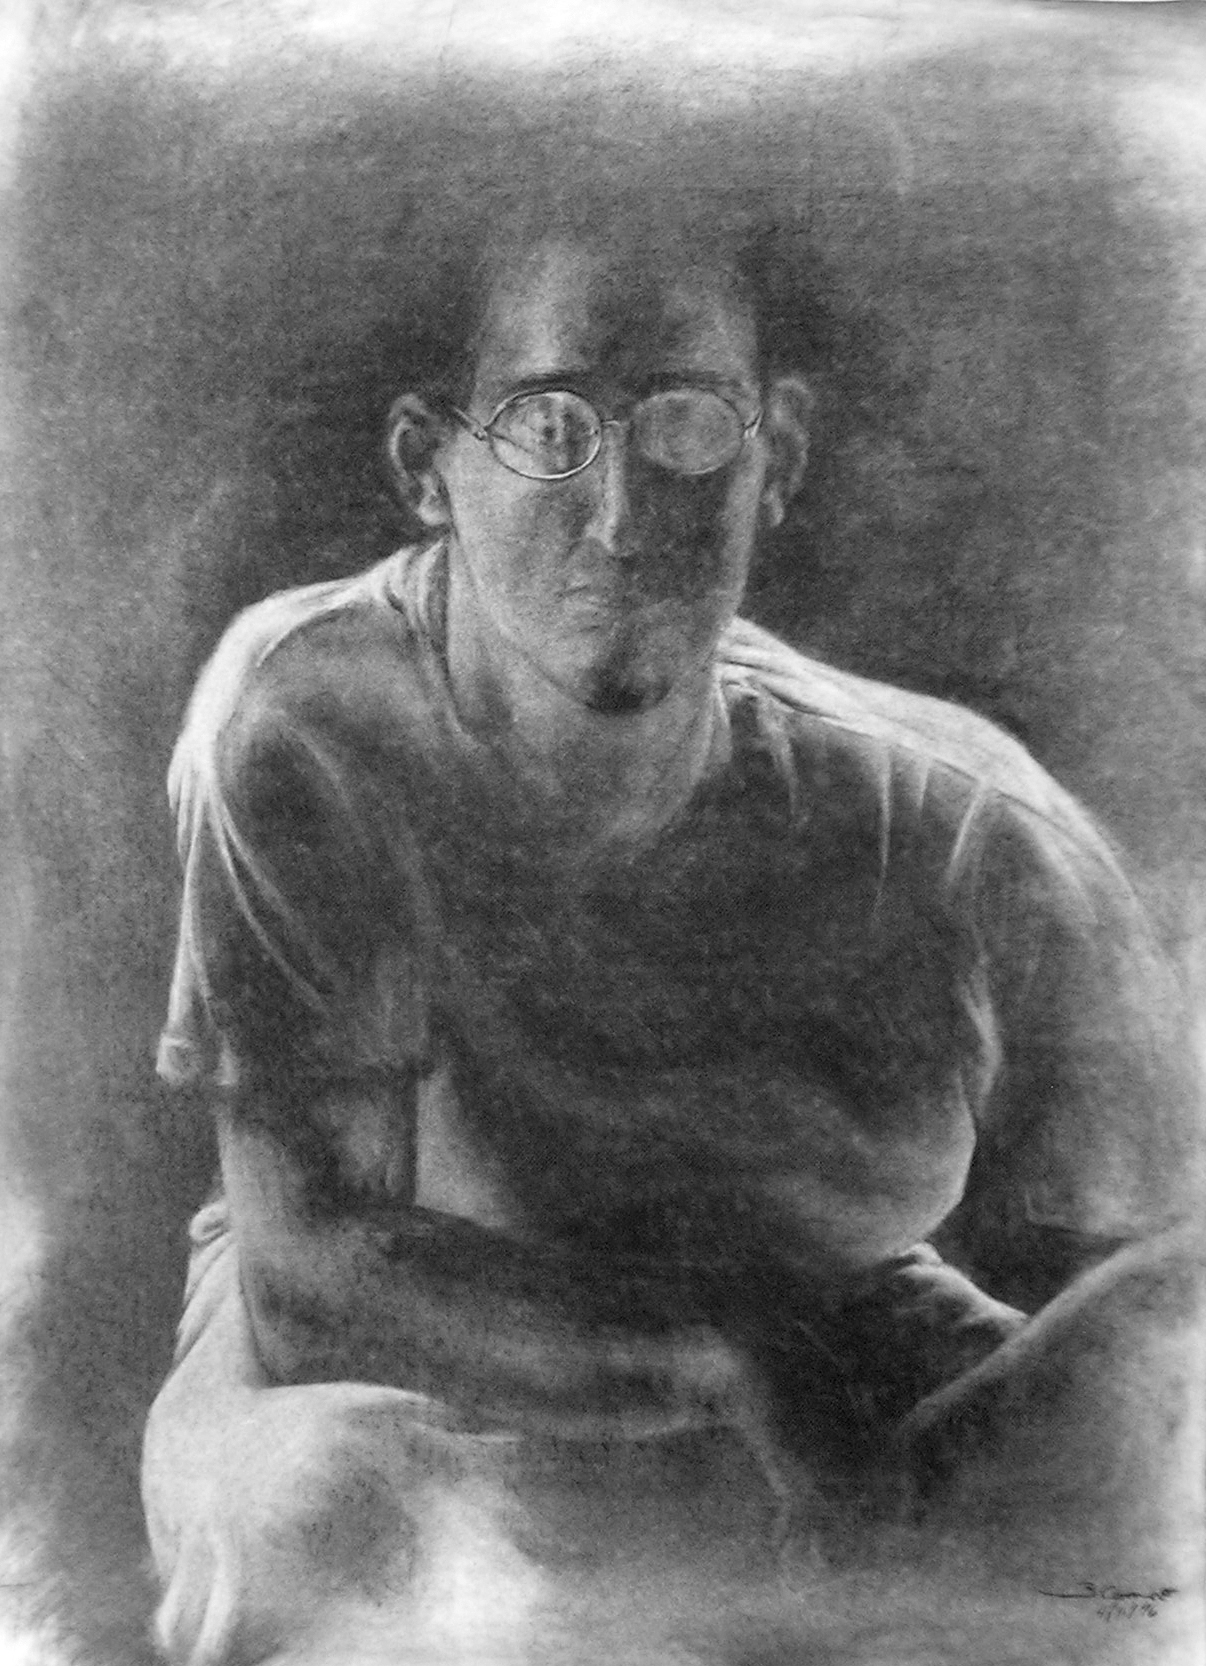 Self-portrait drawing by Brian Coonce 1996